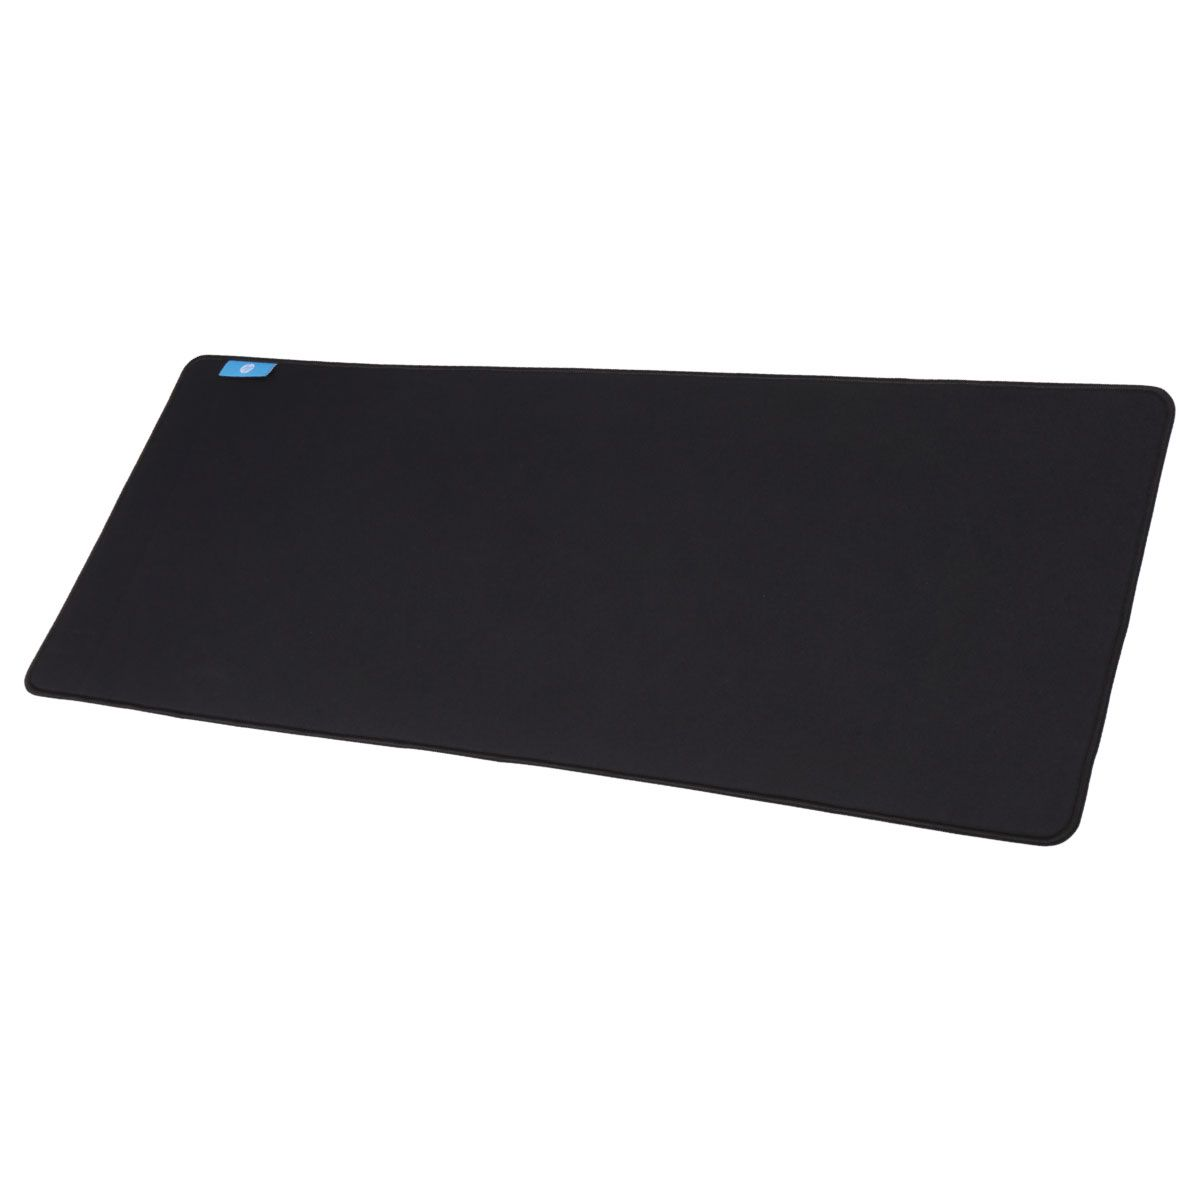 Mouse PAD HP - MP9040 BLACK - EXTRA Grande (900*350*4MM)